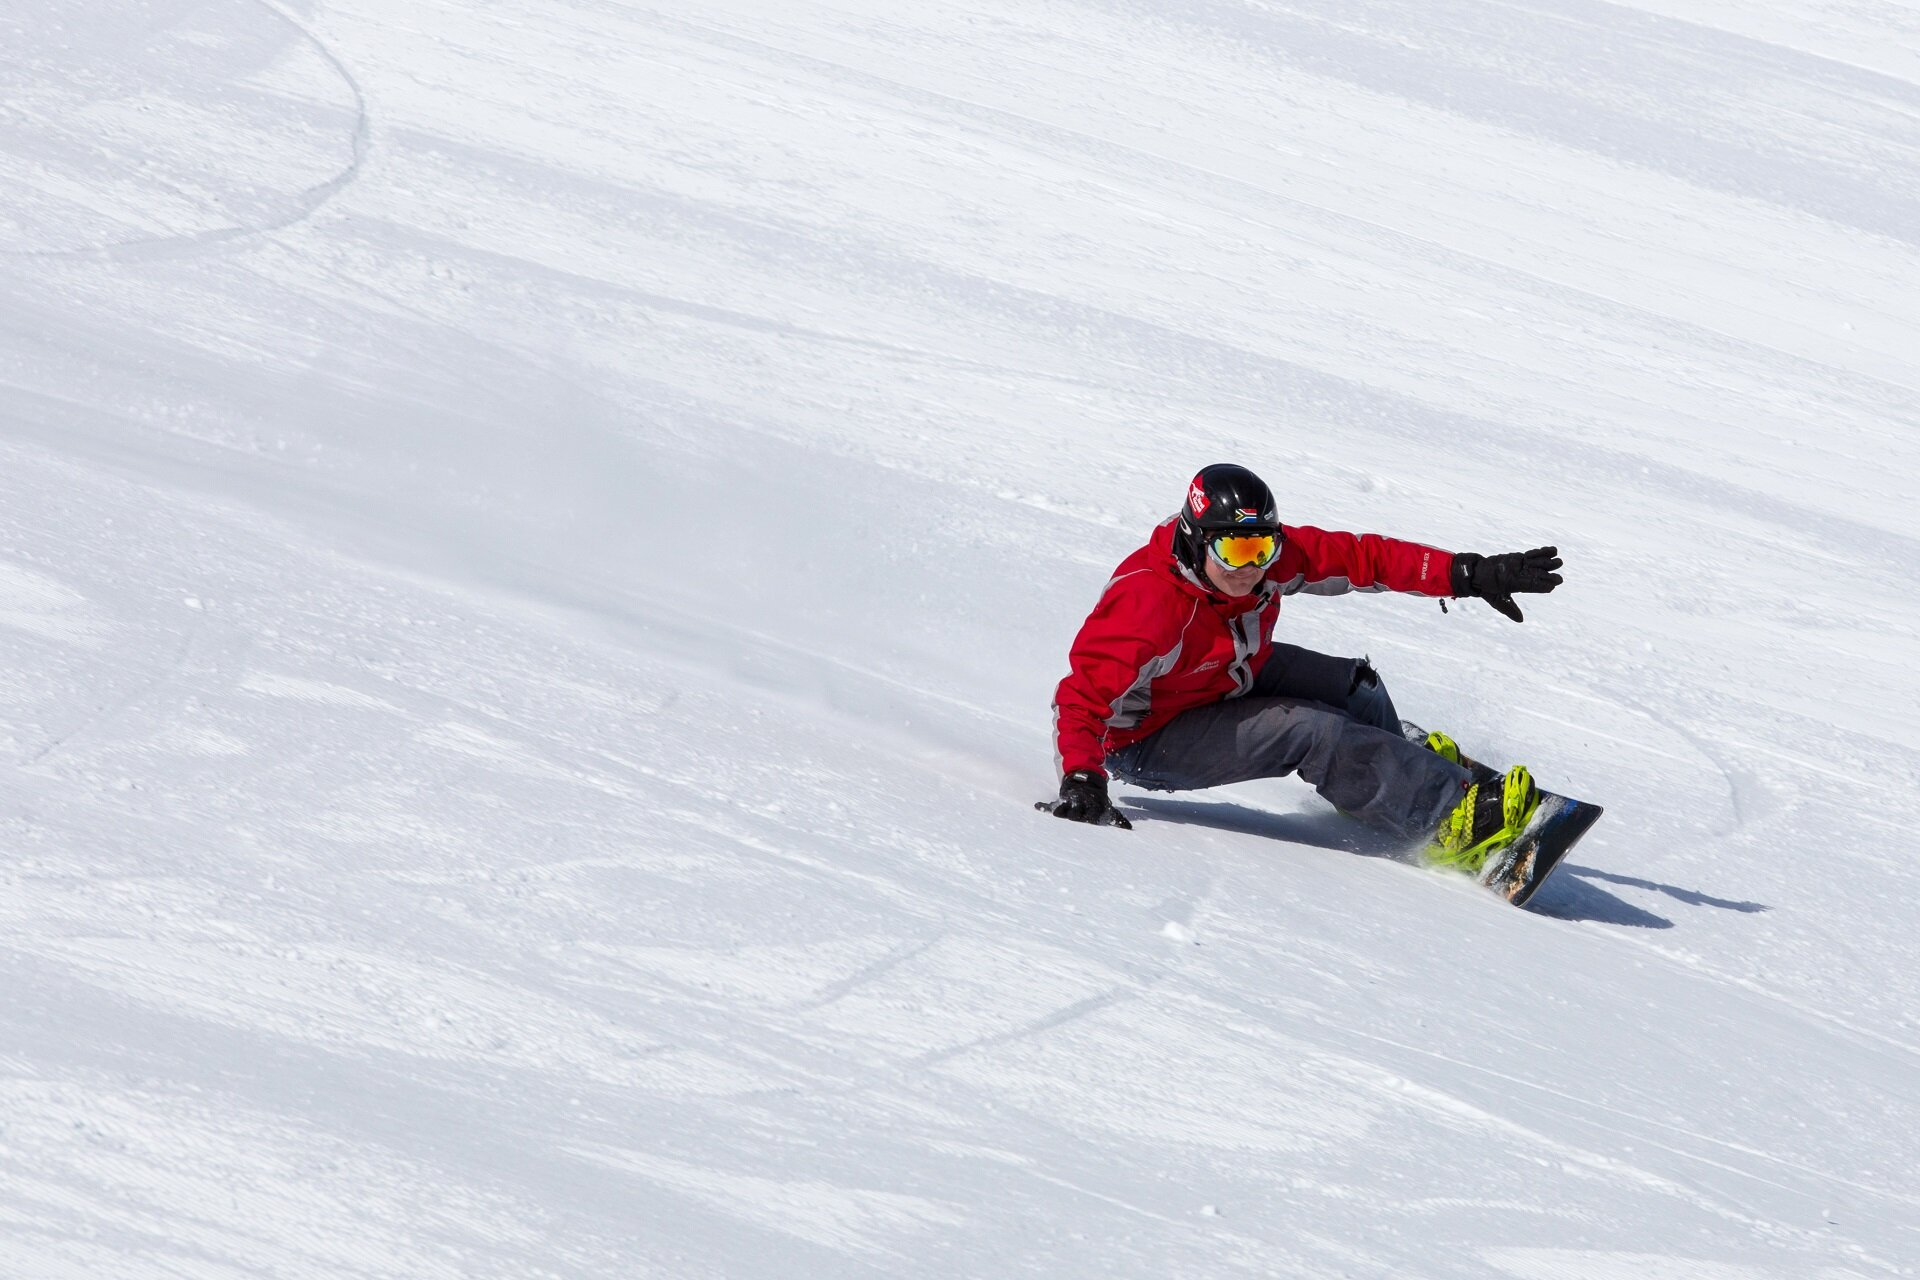 Kasprowy photo shoot snowboard carving in soft boots